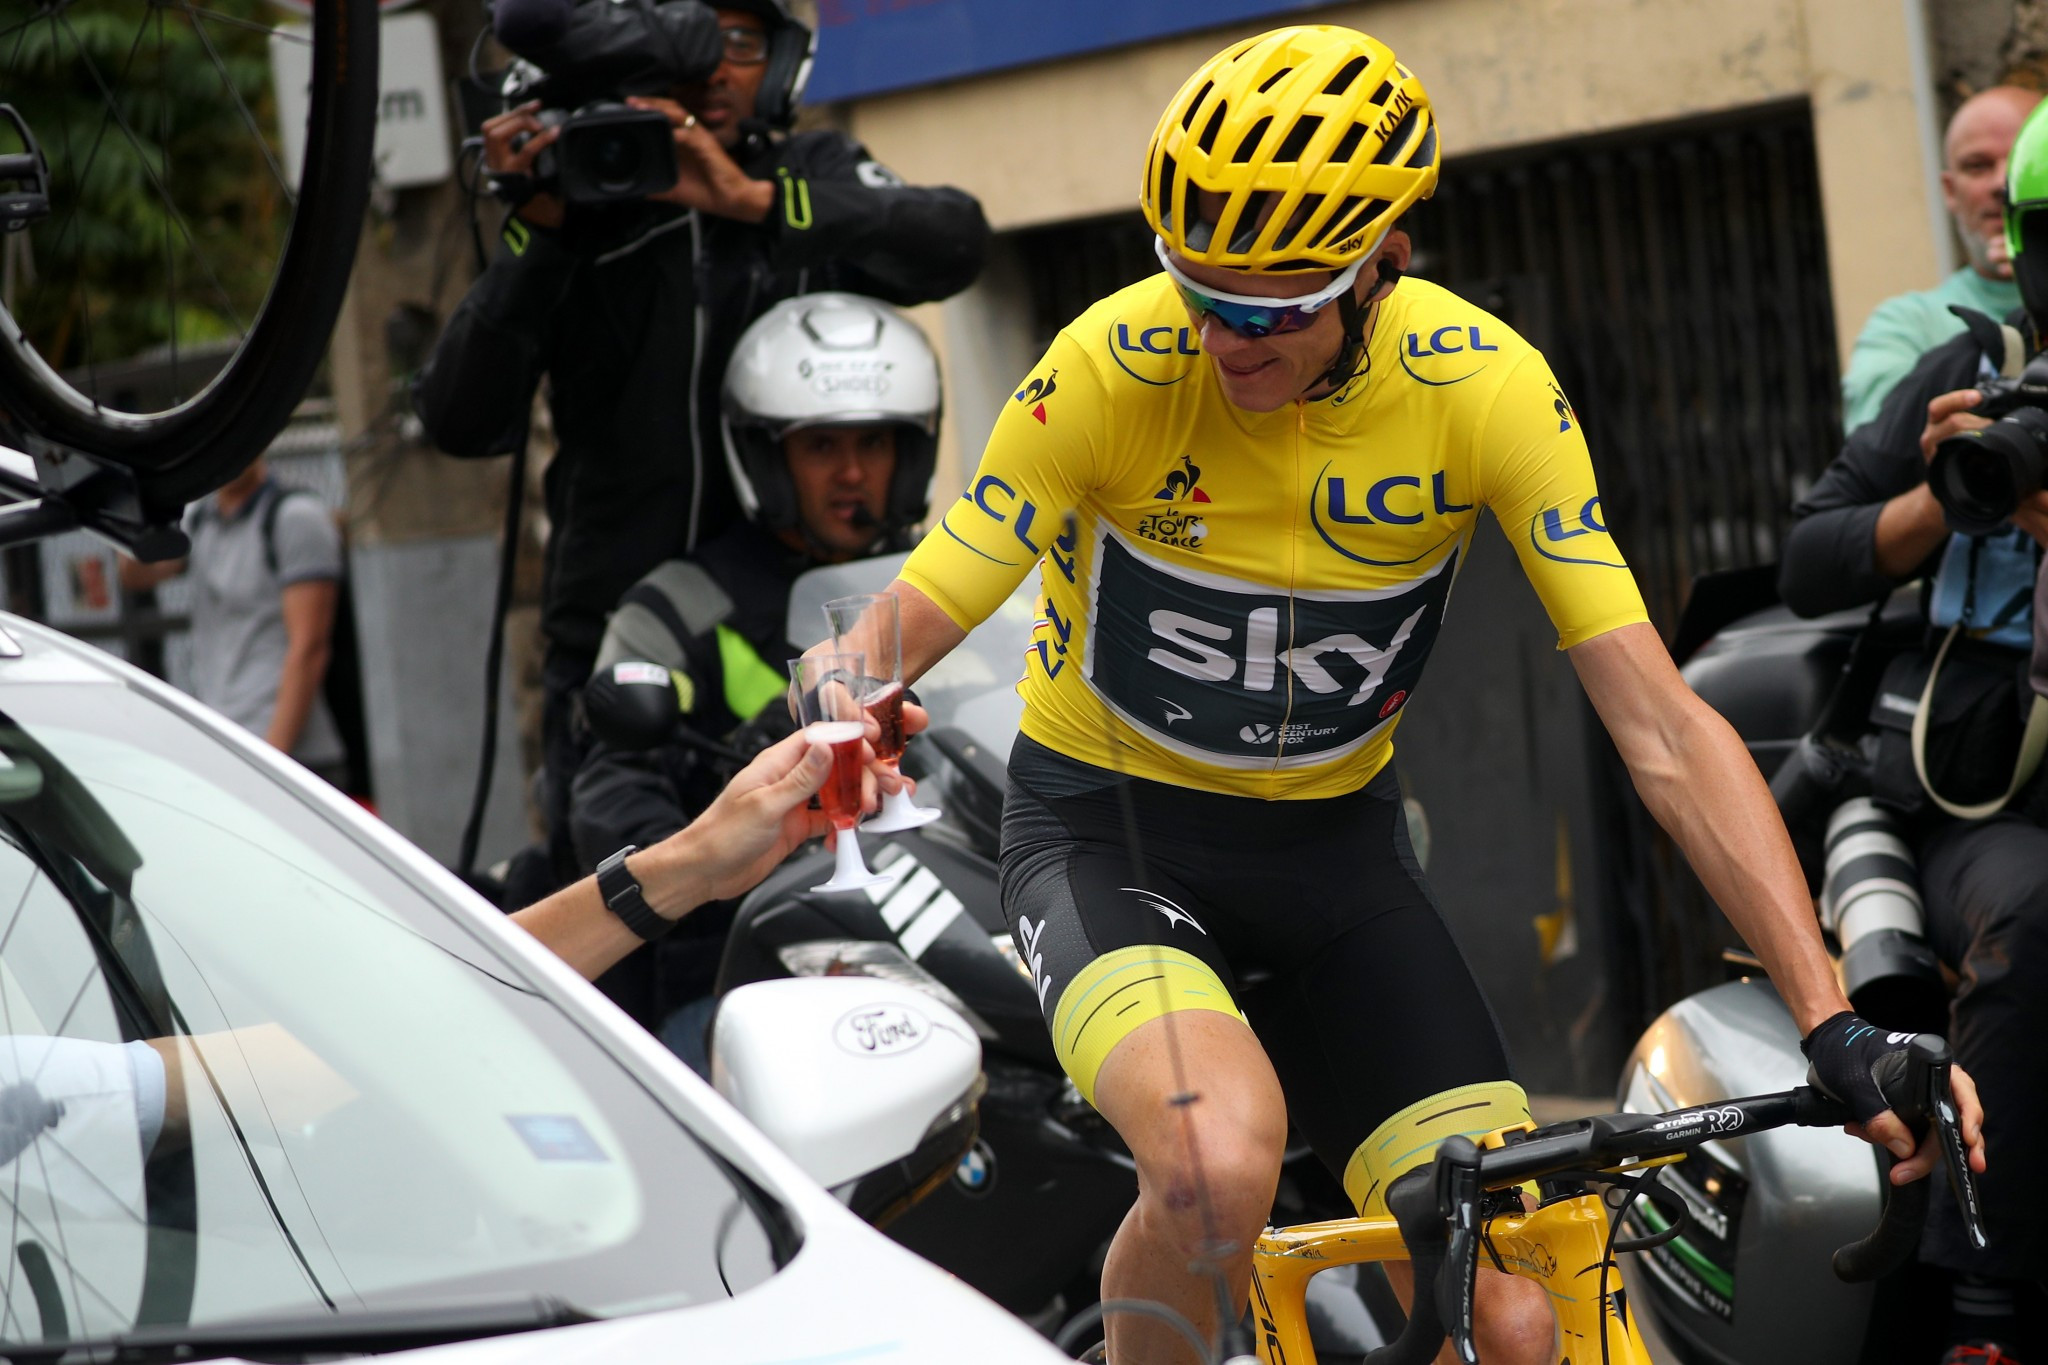 Tour de France winner Chris Froome will seek further success at the Vuelta a Espana ©Getty Images